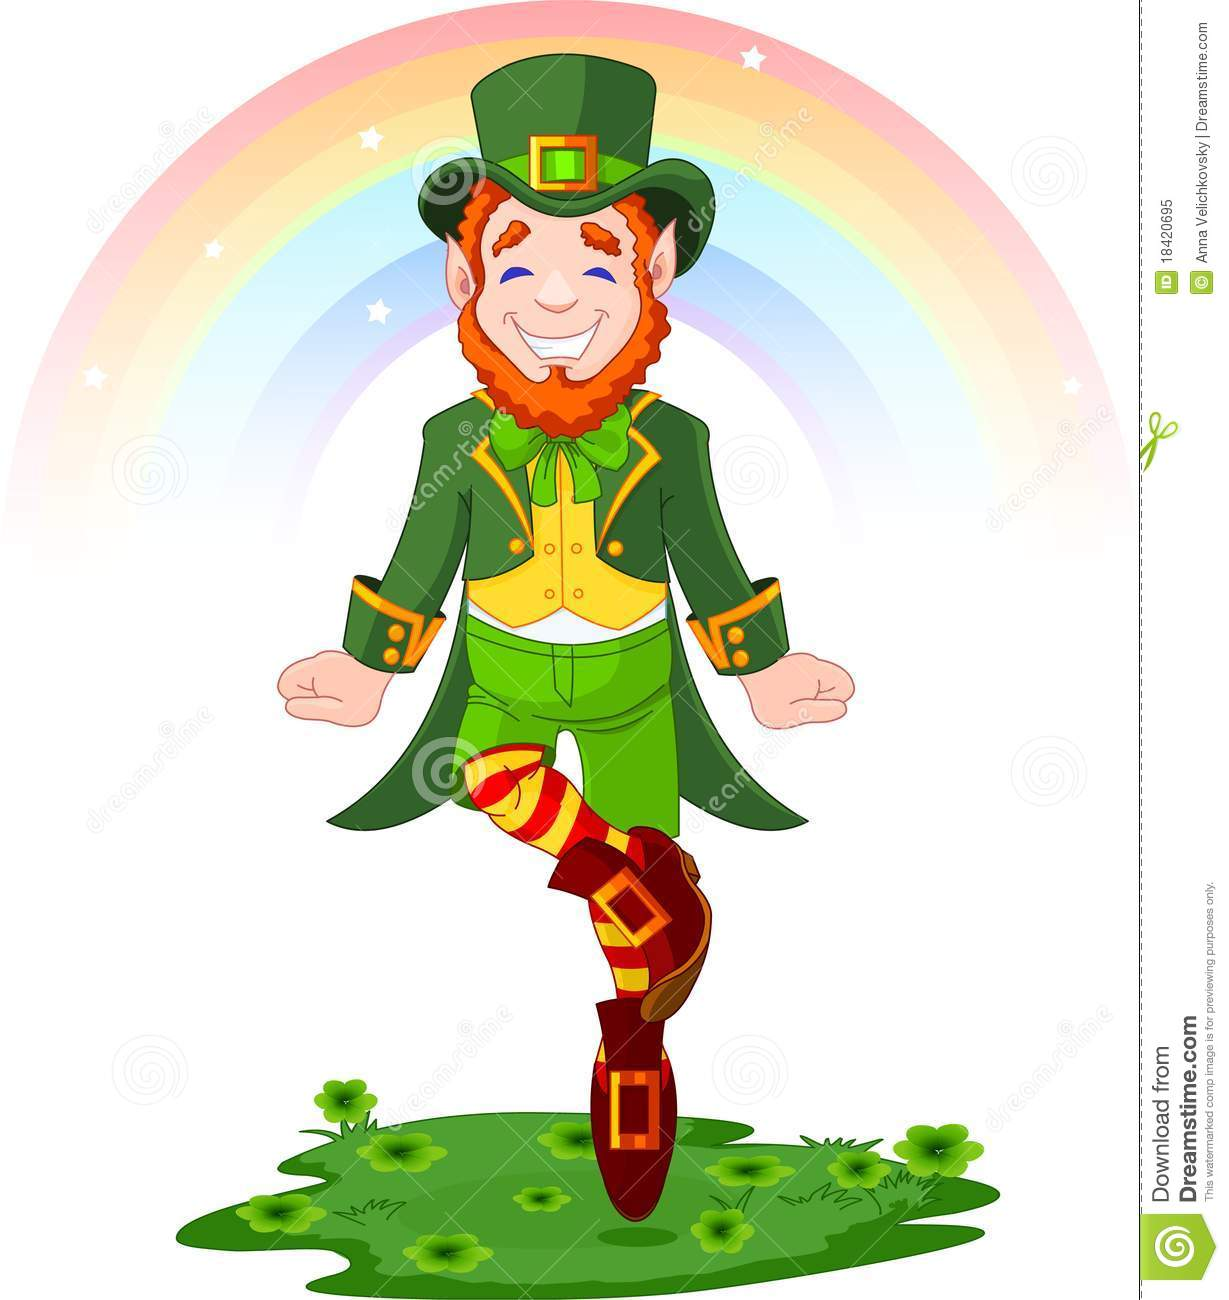 Uncategorized Dancing Leprechauns st patricks day lucky dancing leprechaun royalty free stock photo